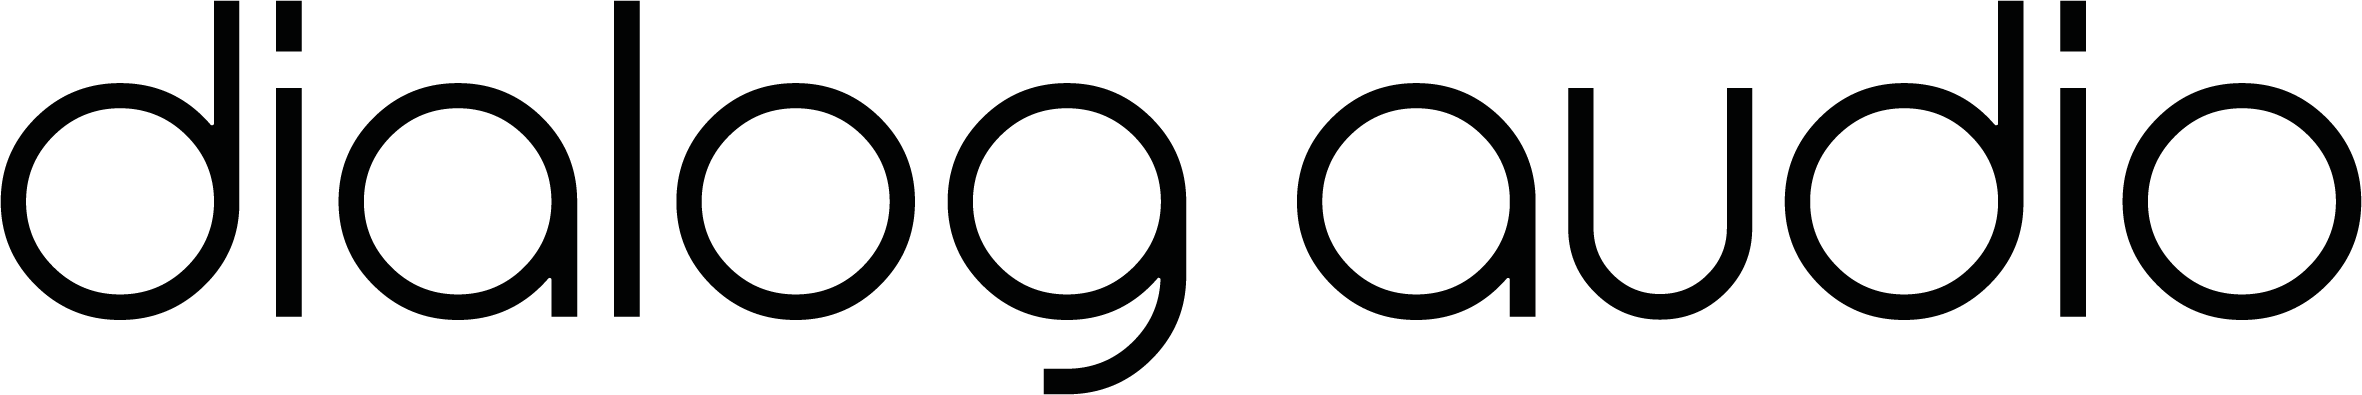 dialog audio logo